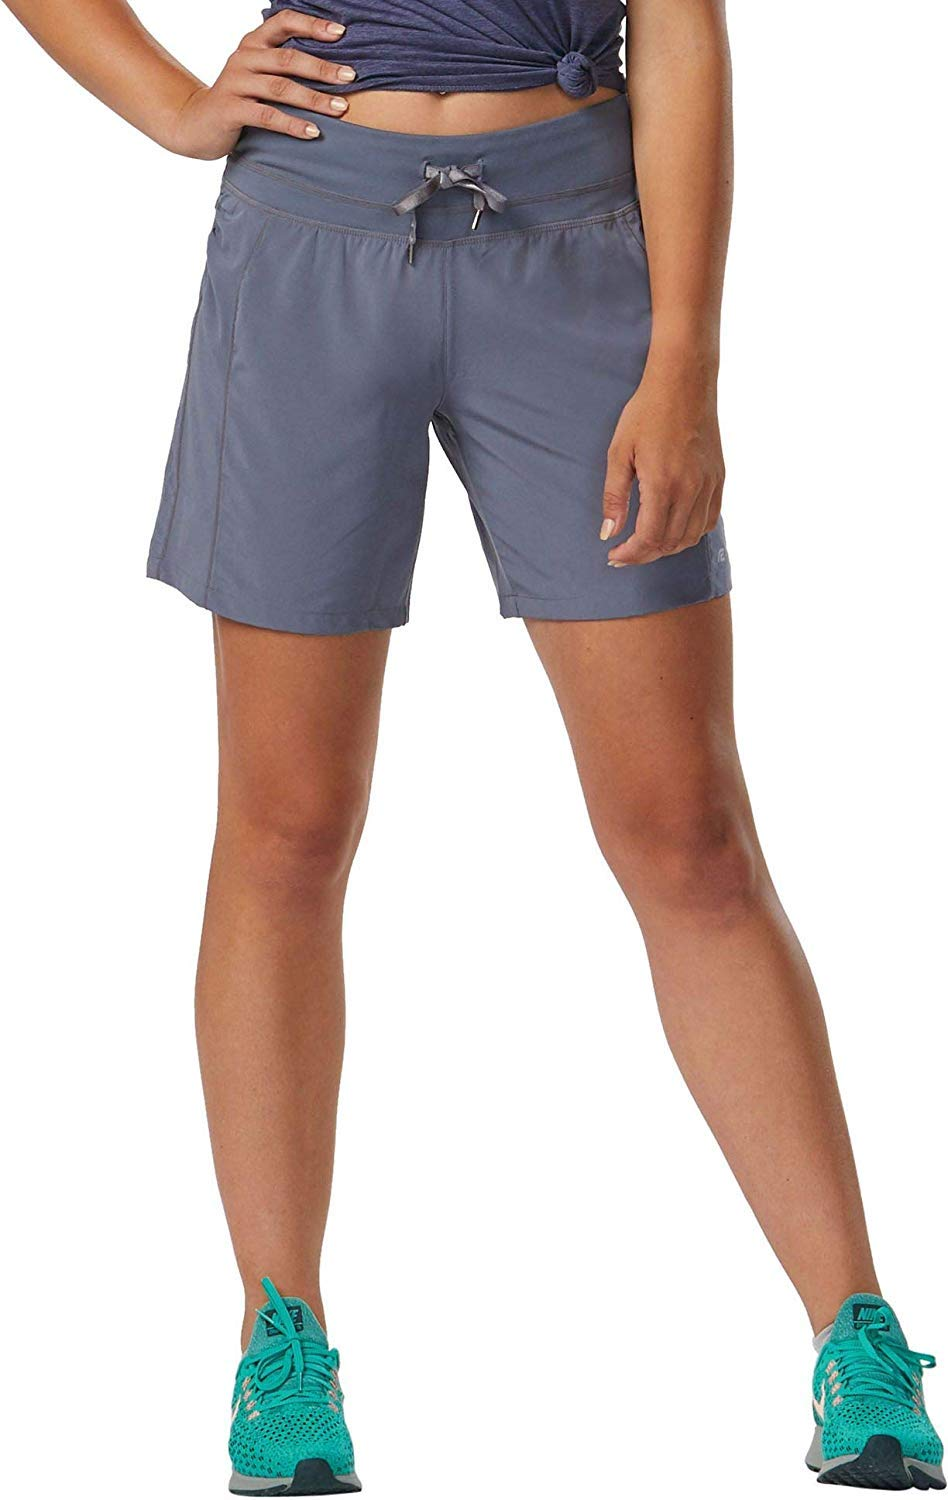 R-Gear Women's 7-inch Running Workout Shorts with Zipper Back Pocket for Gym, Sports, Leisure | Inspiration